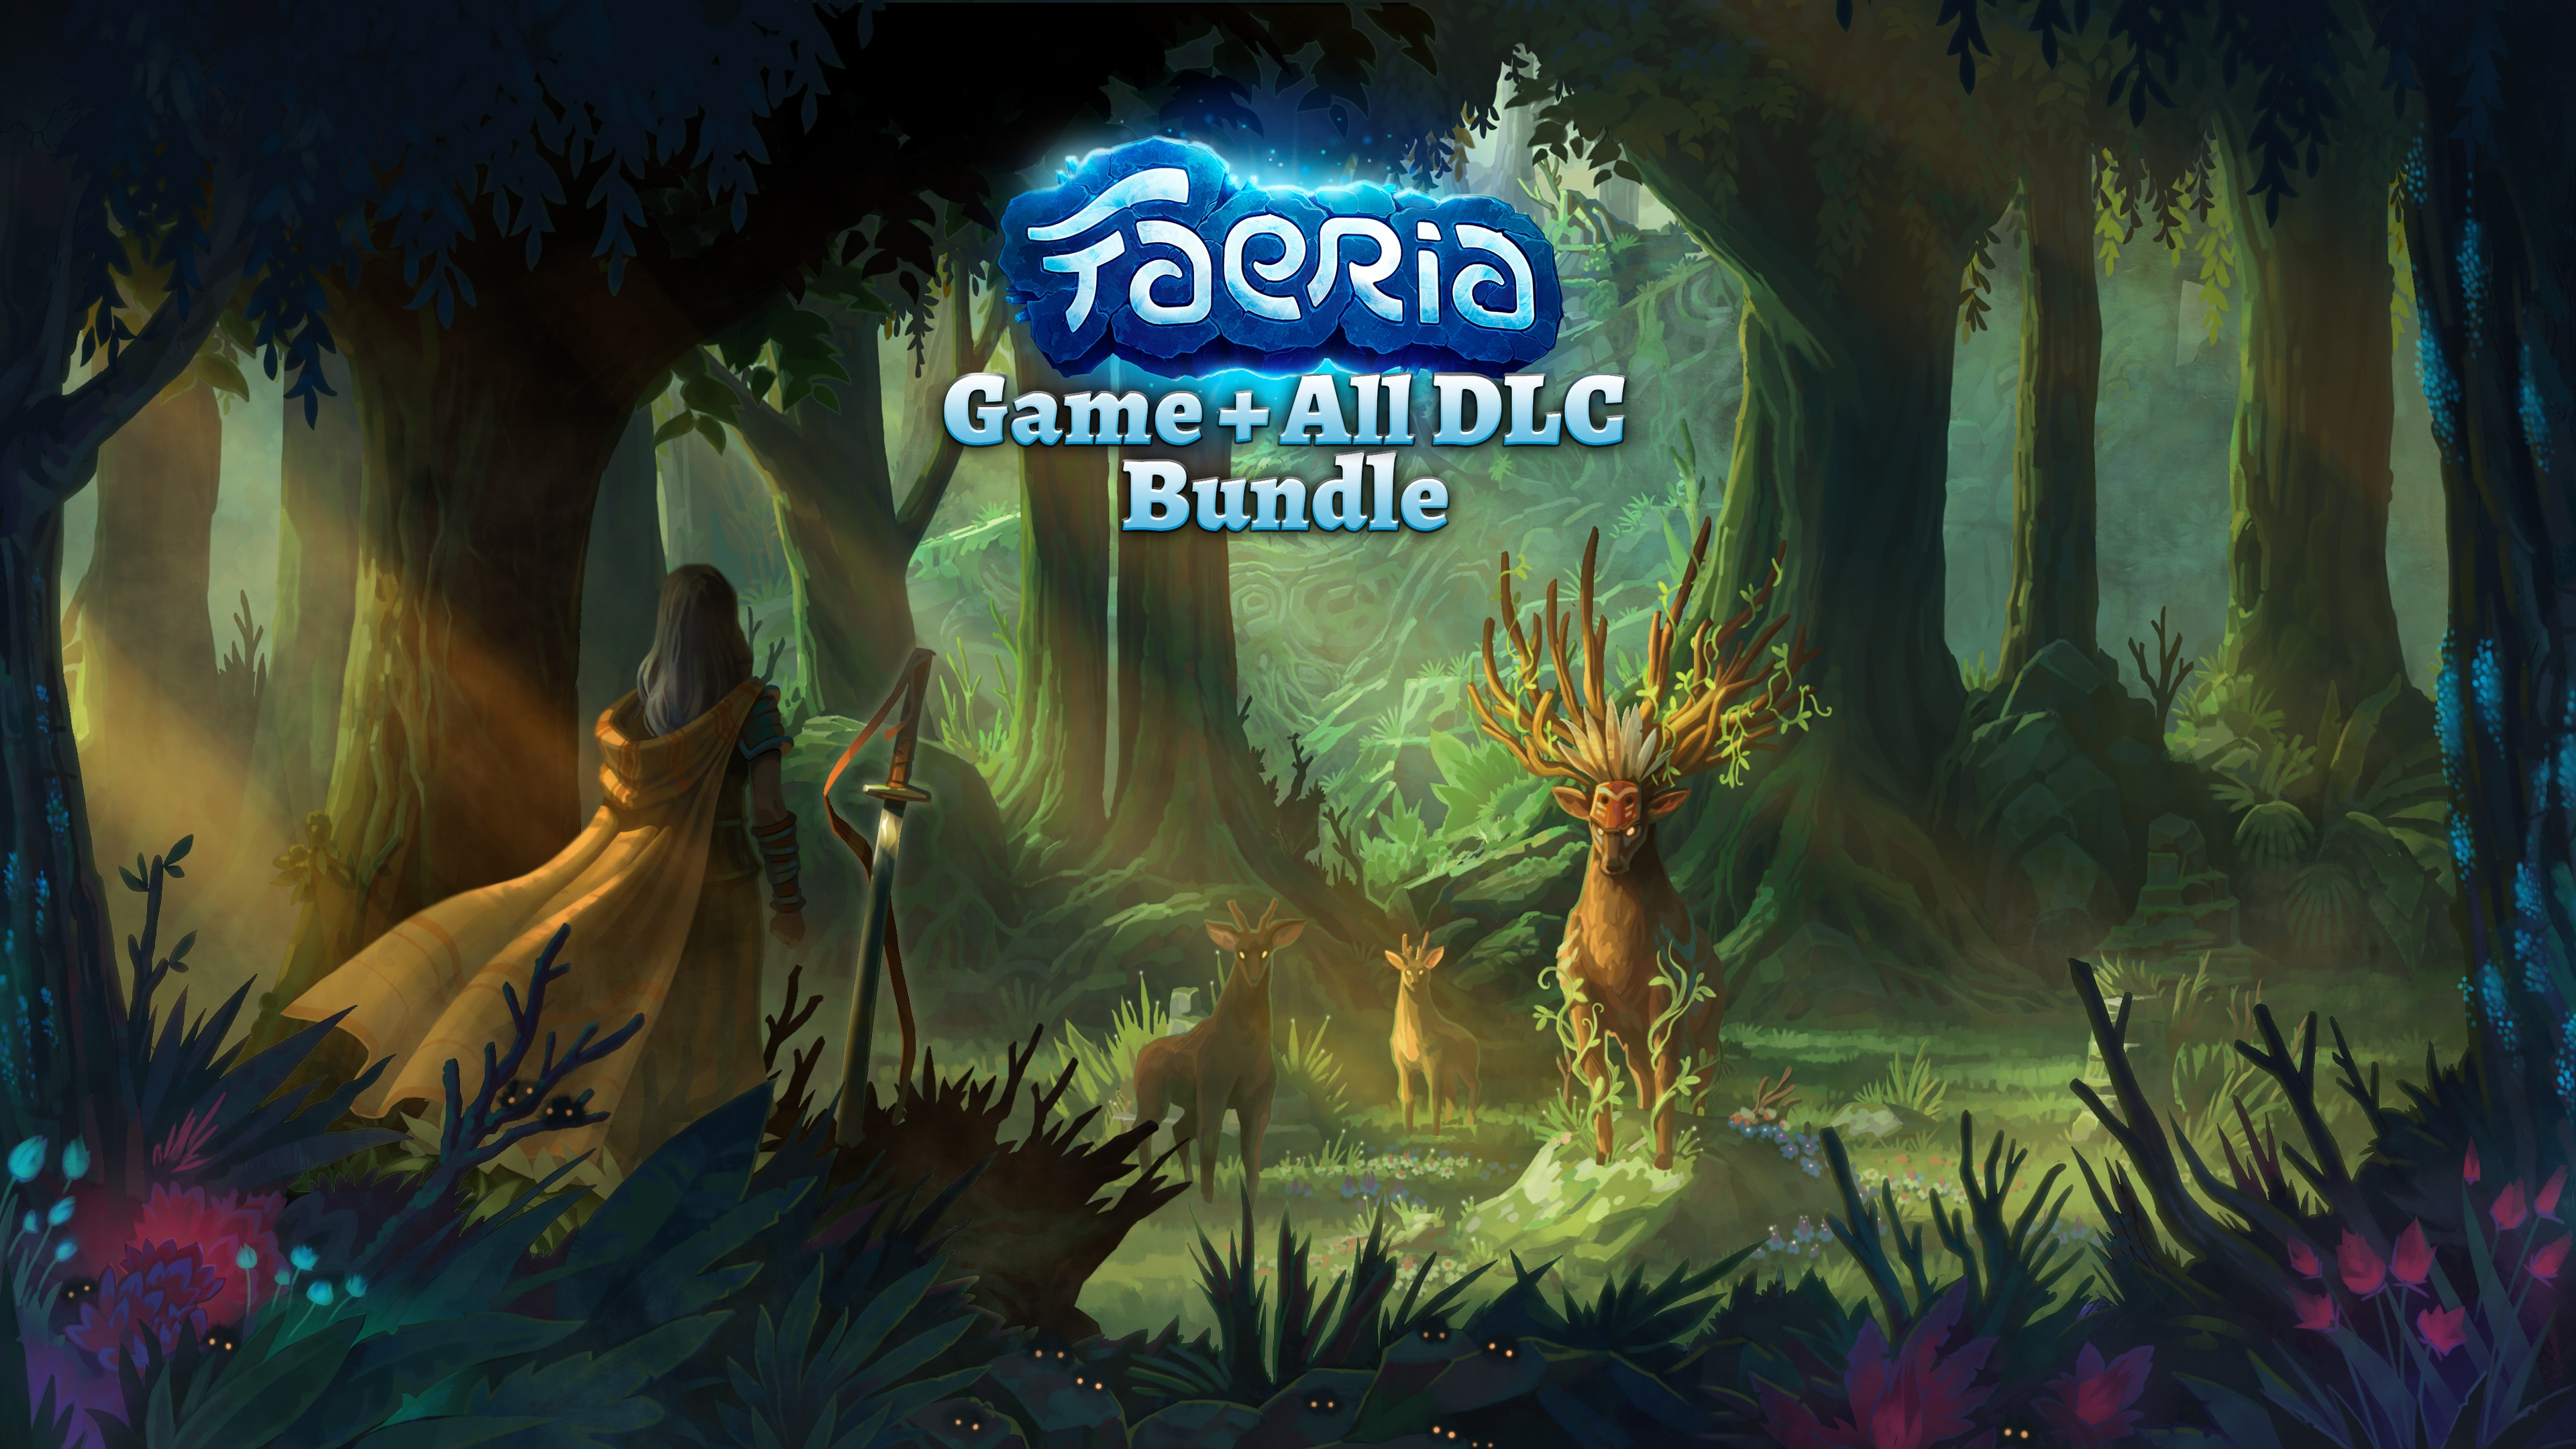 Faeria: Game + All DLC Bundle